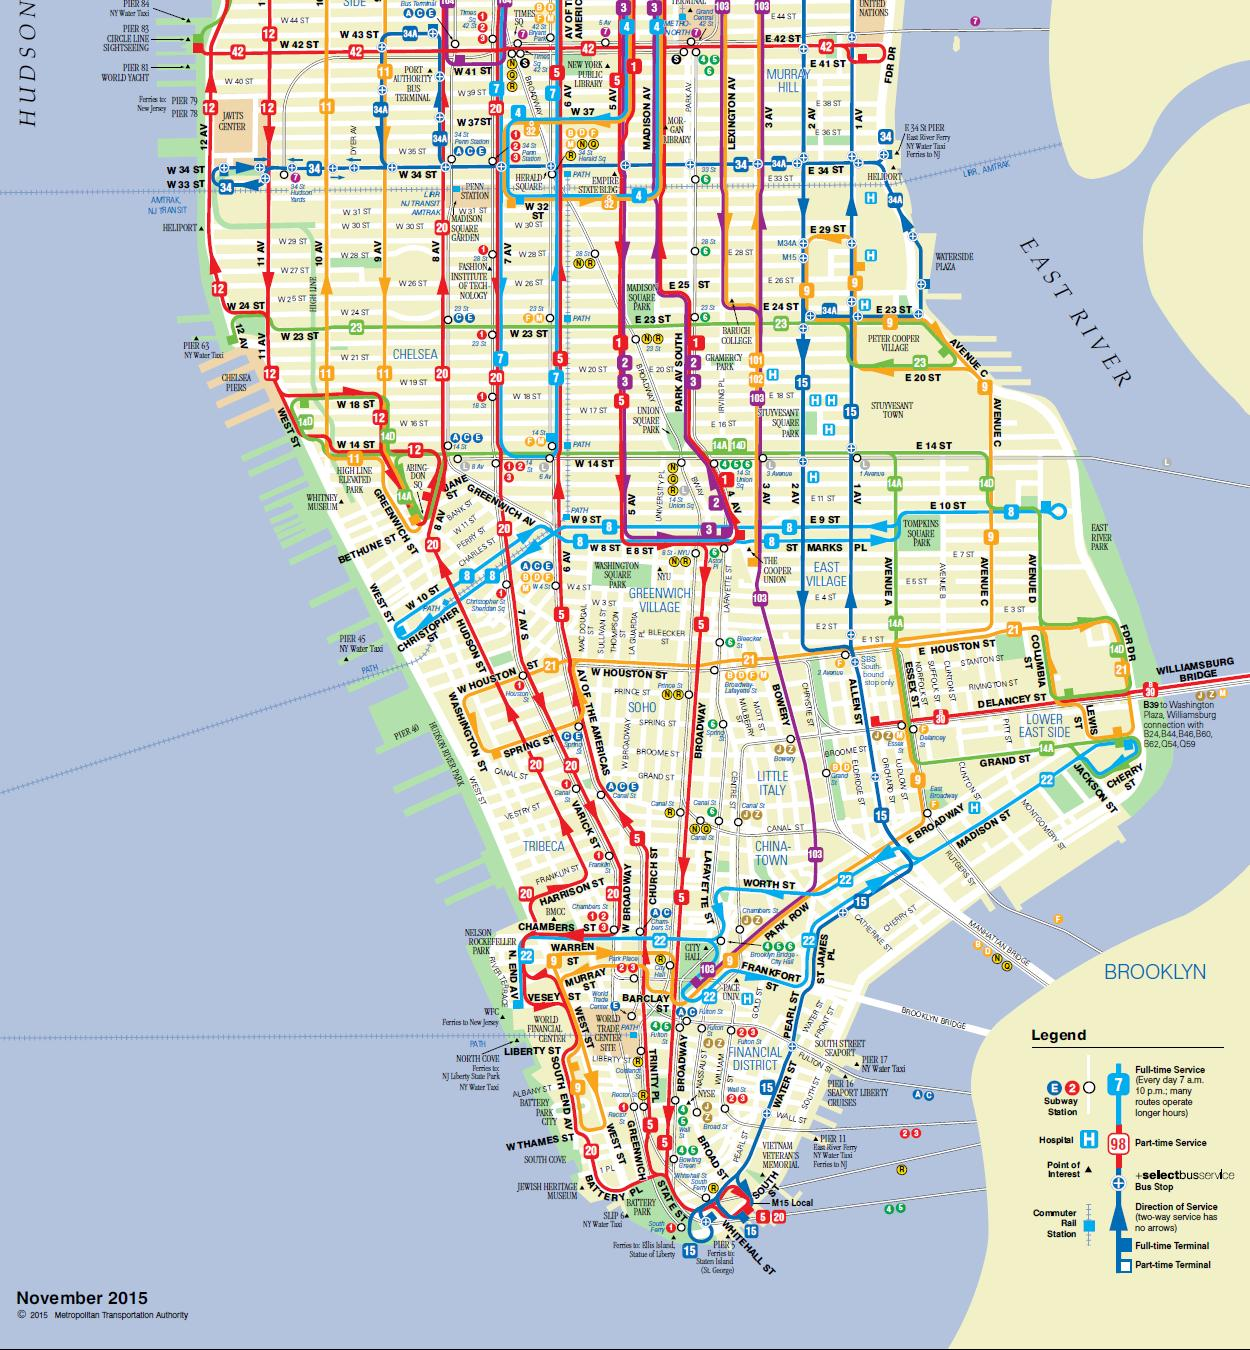 Express Bus Nyc Map.Mta Brooklyn Bus Map Blizzard Beach Map